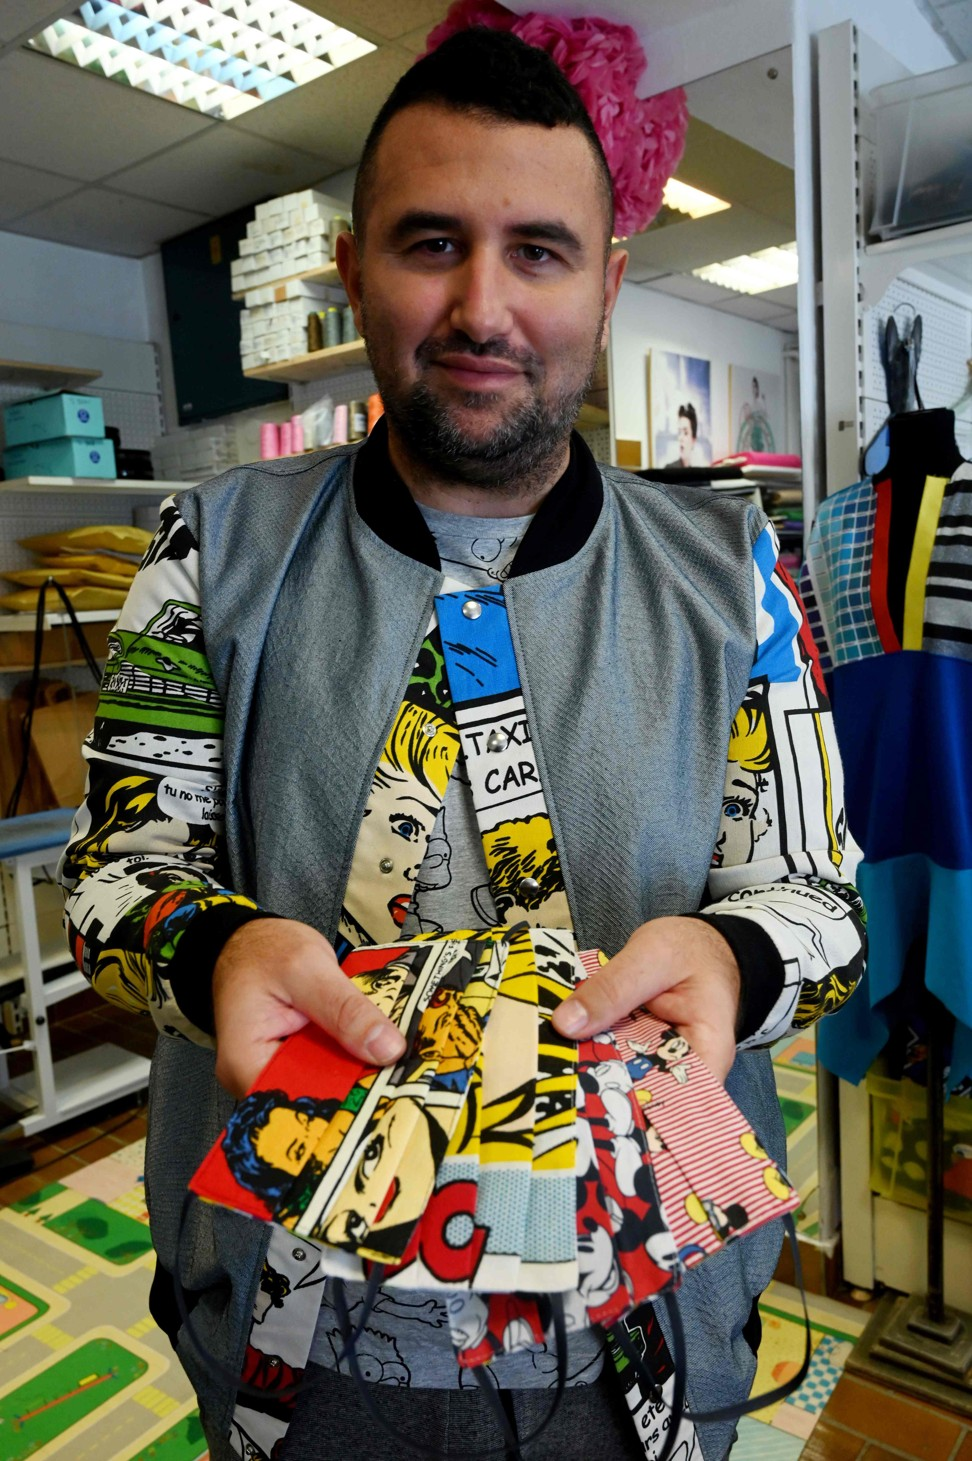 Croatian designer Aragovic shows a selection of face masks with his designs on them. Photo: AFP